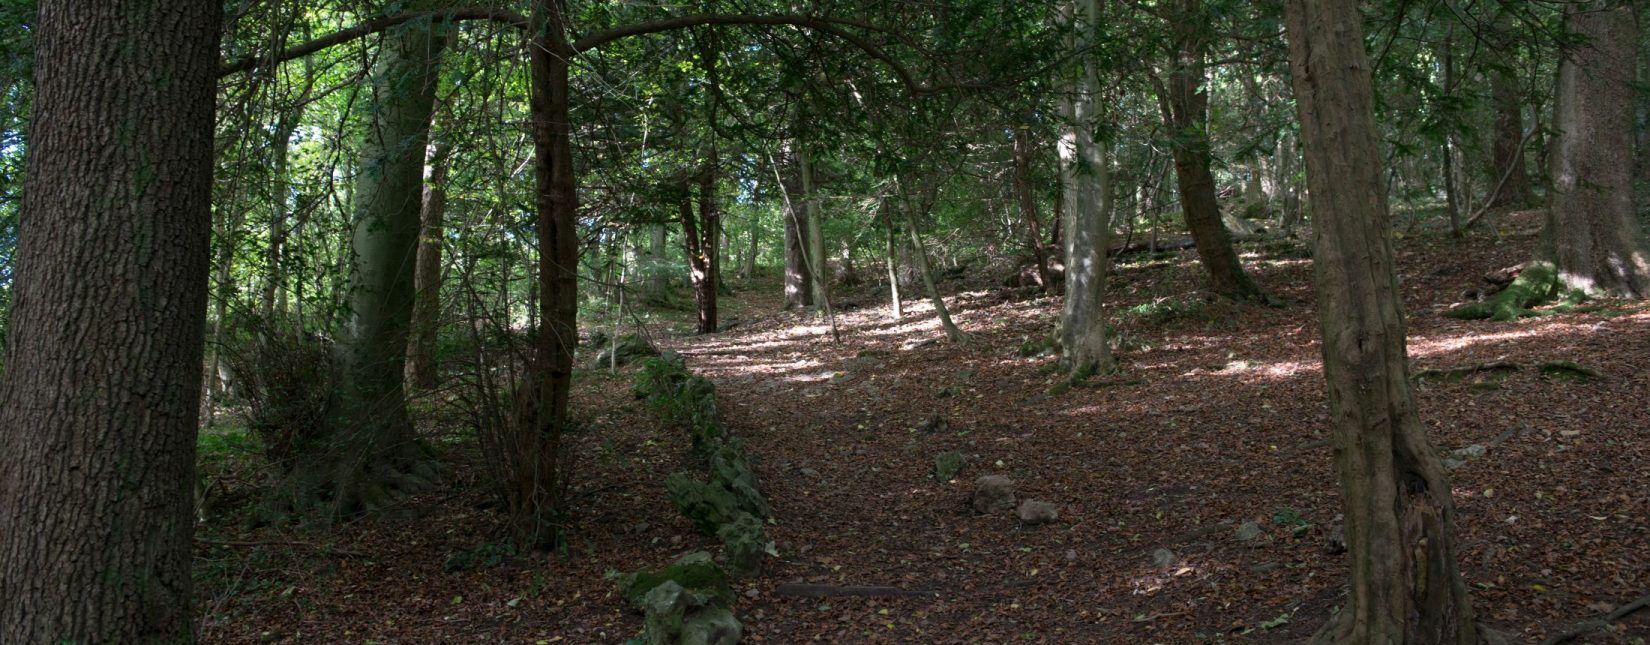 Explore Serpentine Woods in Kendal